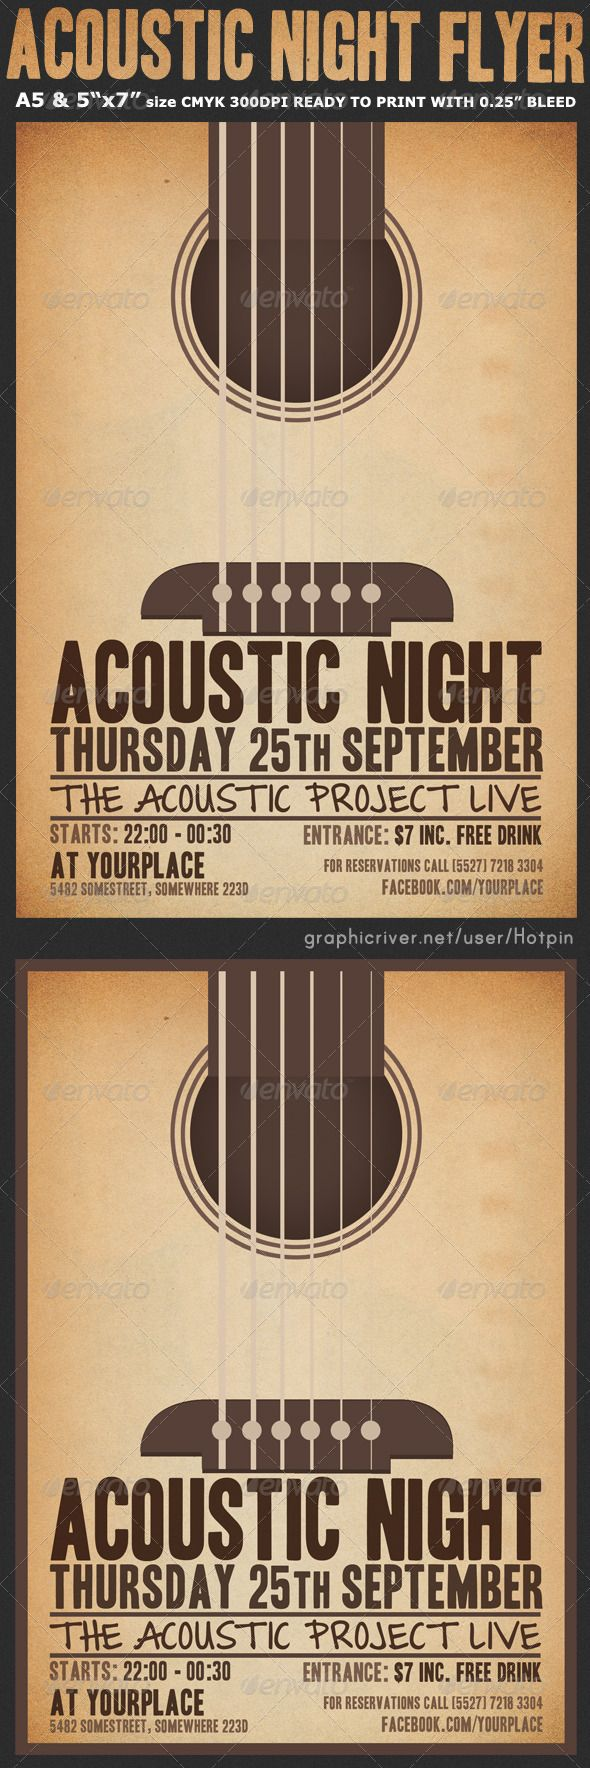 "Acoustic Night Event Flyer Template is very modern flyer that will give the perfect promotion for your upcoming Bar, pub or club event! All elements are in separate layers and text is editable.  2 PSD files –A5 (5.82""x8.26""), 5""x7"" size with 0.3mm bleed  Clearly labeled folders and layers  CMYK – 300dpi – Ready to print with guides"